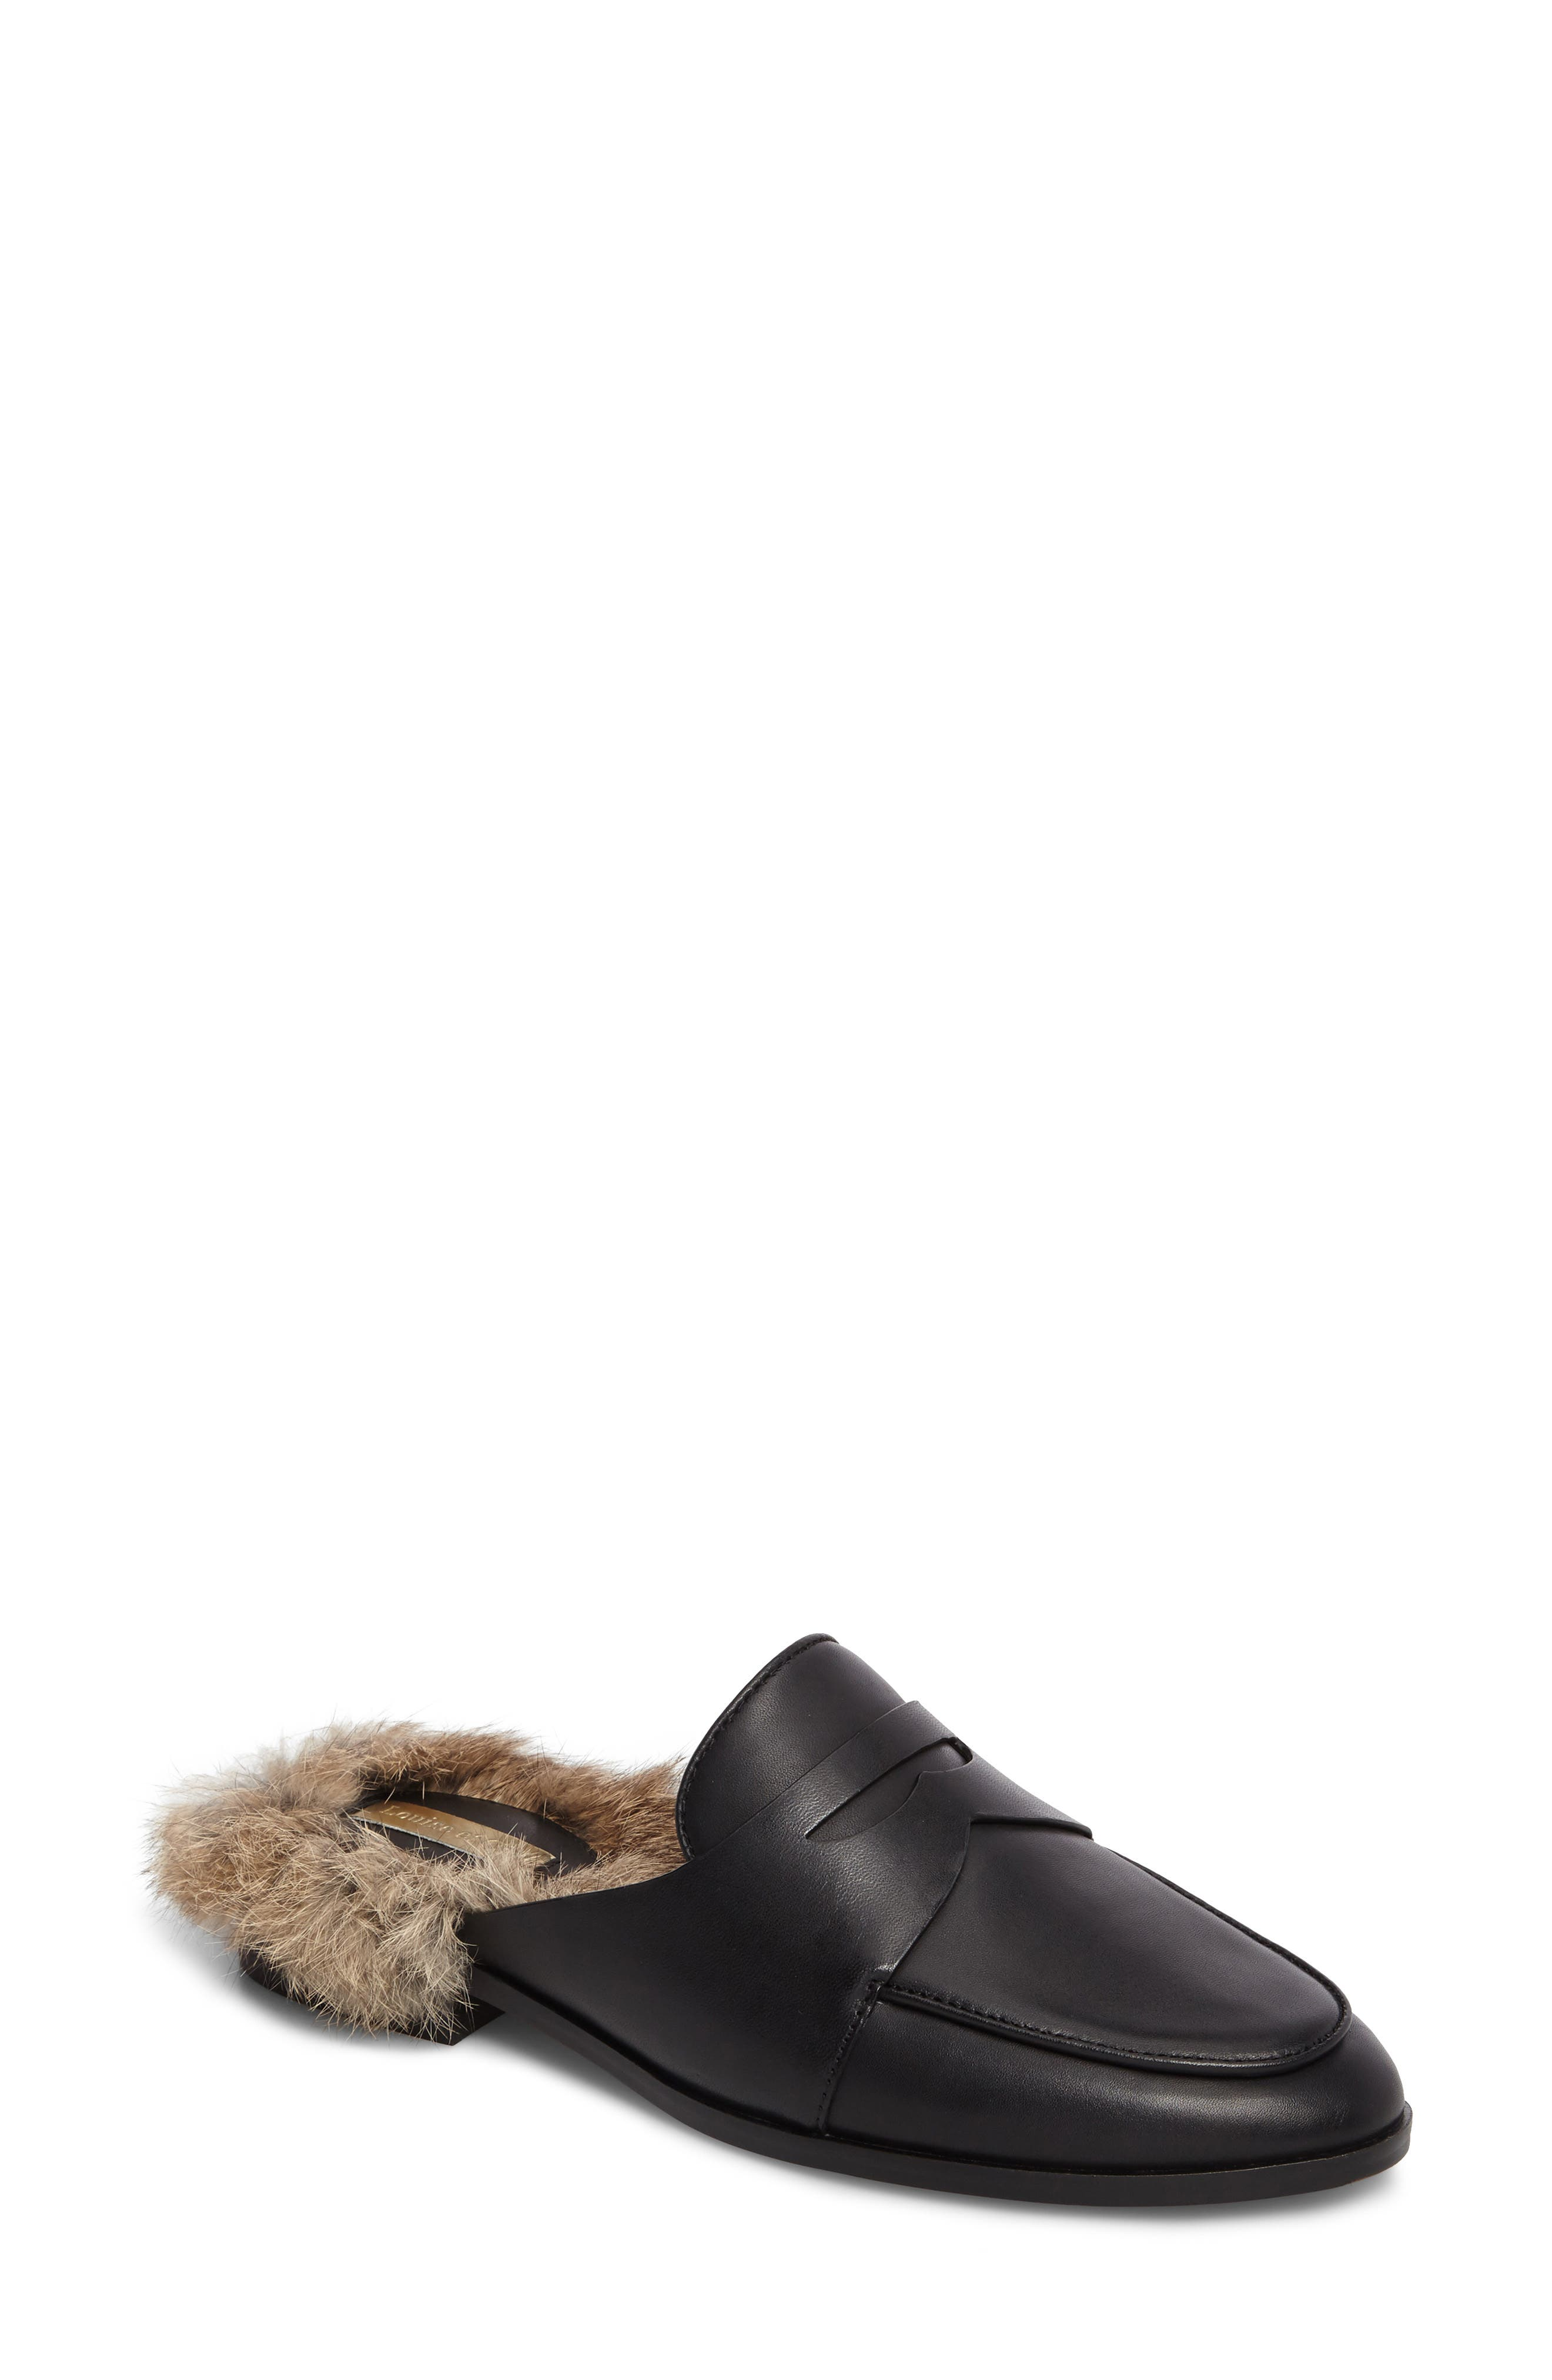 Dugan II Genuine Rabbit Fur Mule,                             Main thumbnail 1, color,                             Black Leather